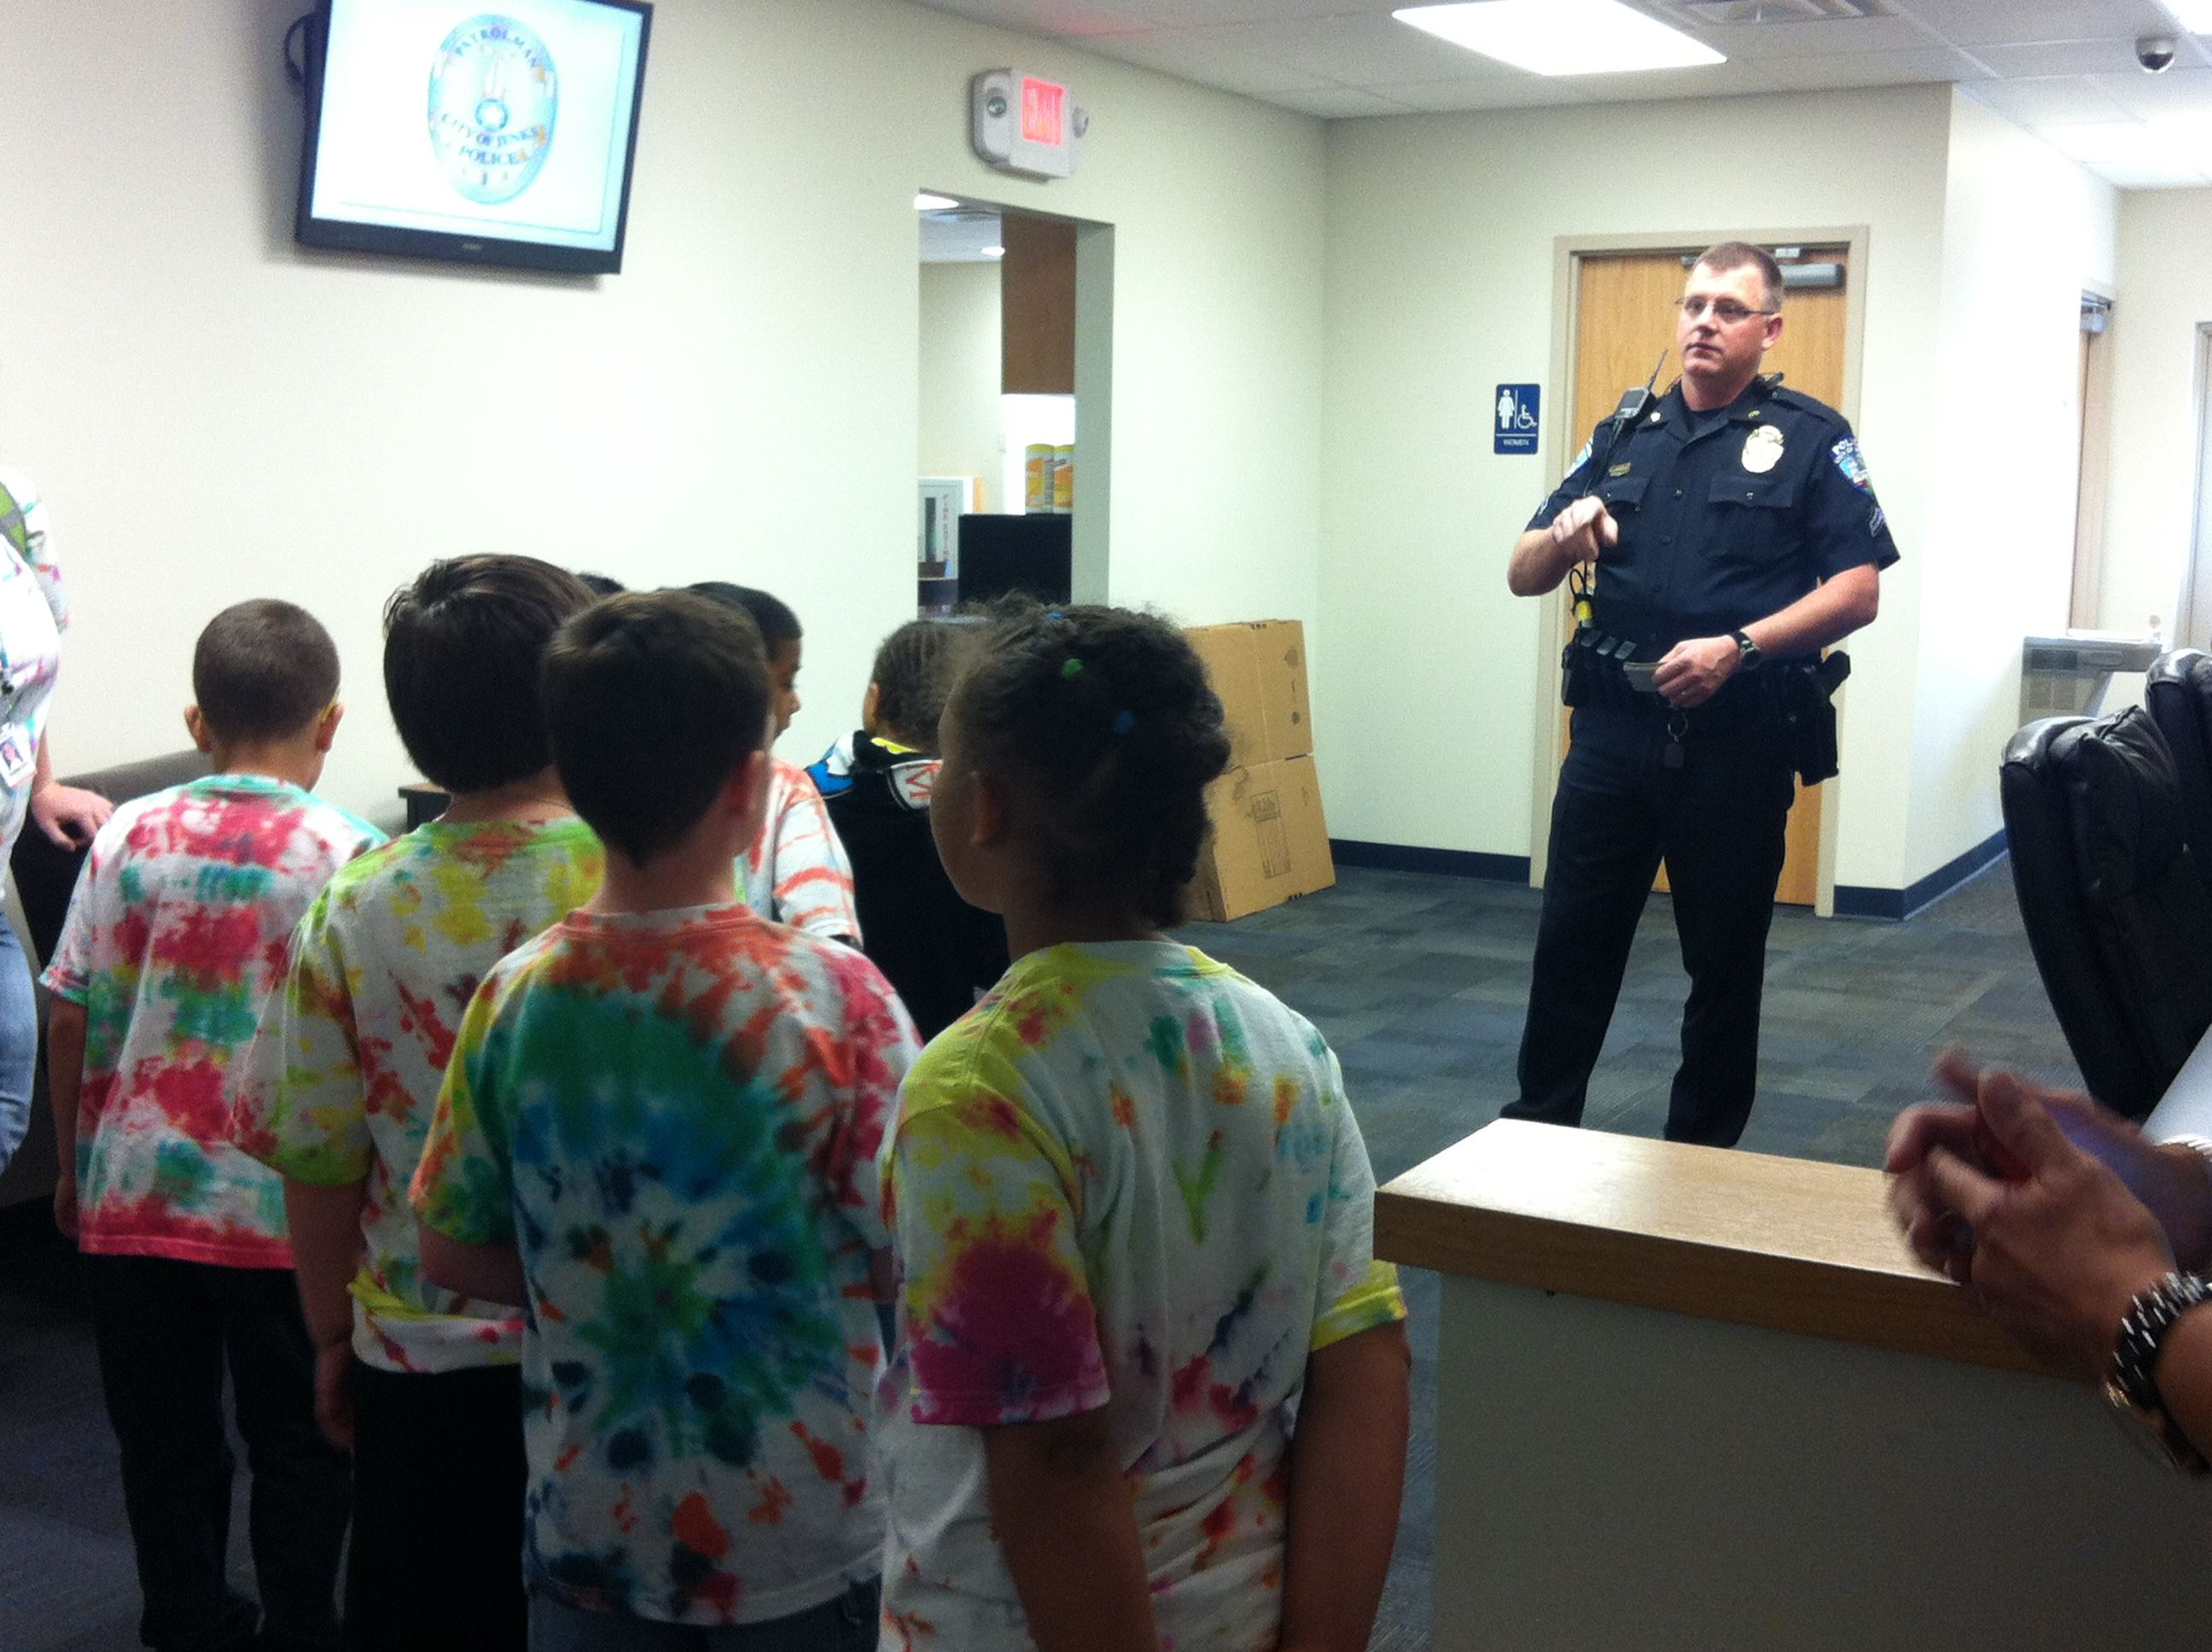 Officer Giving a Headquarters Tour to a Group of Kids in Tye Dye Shirts